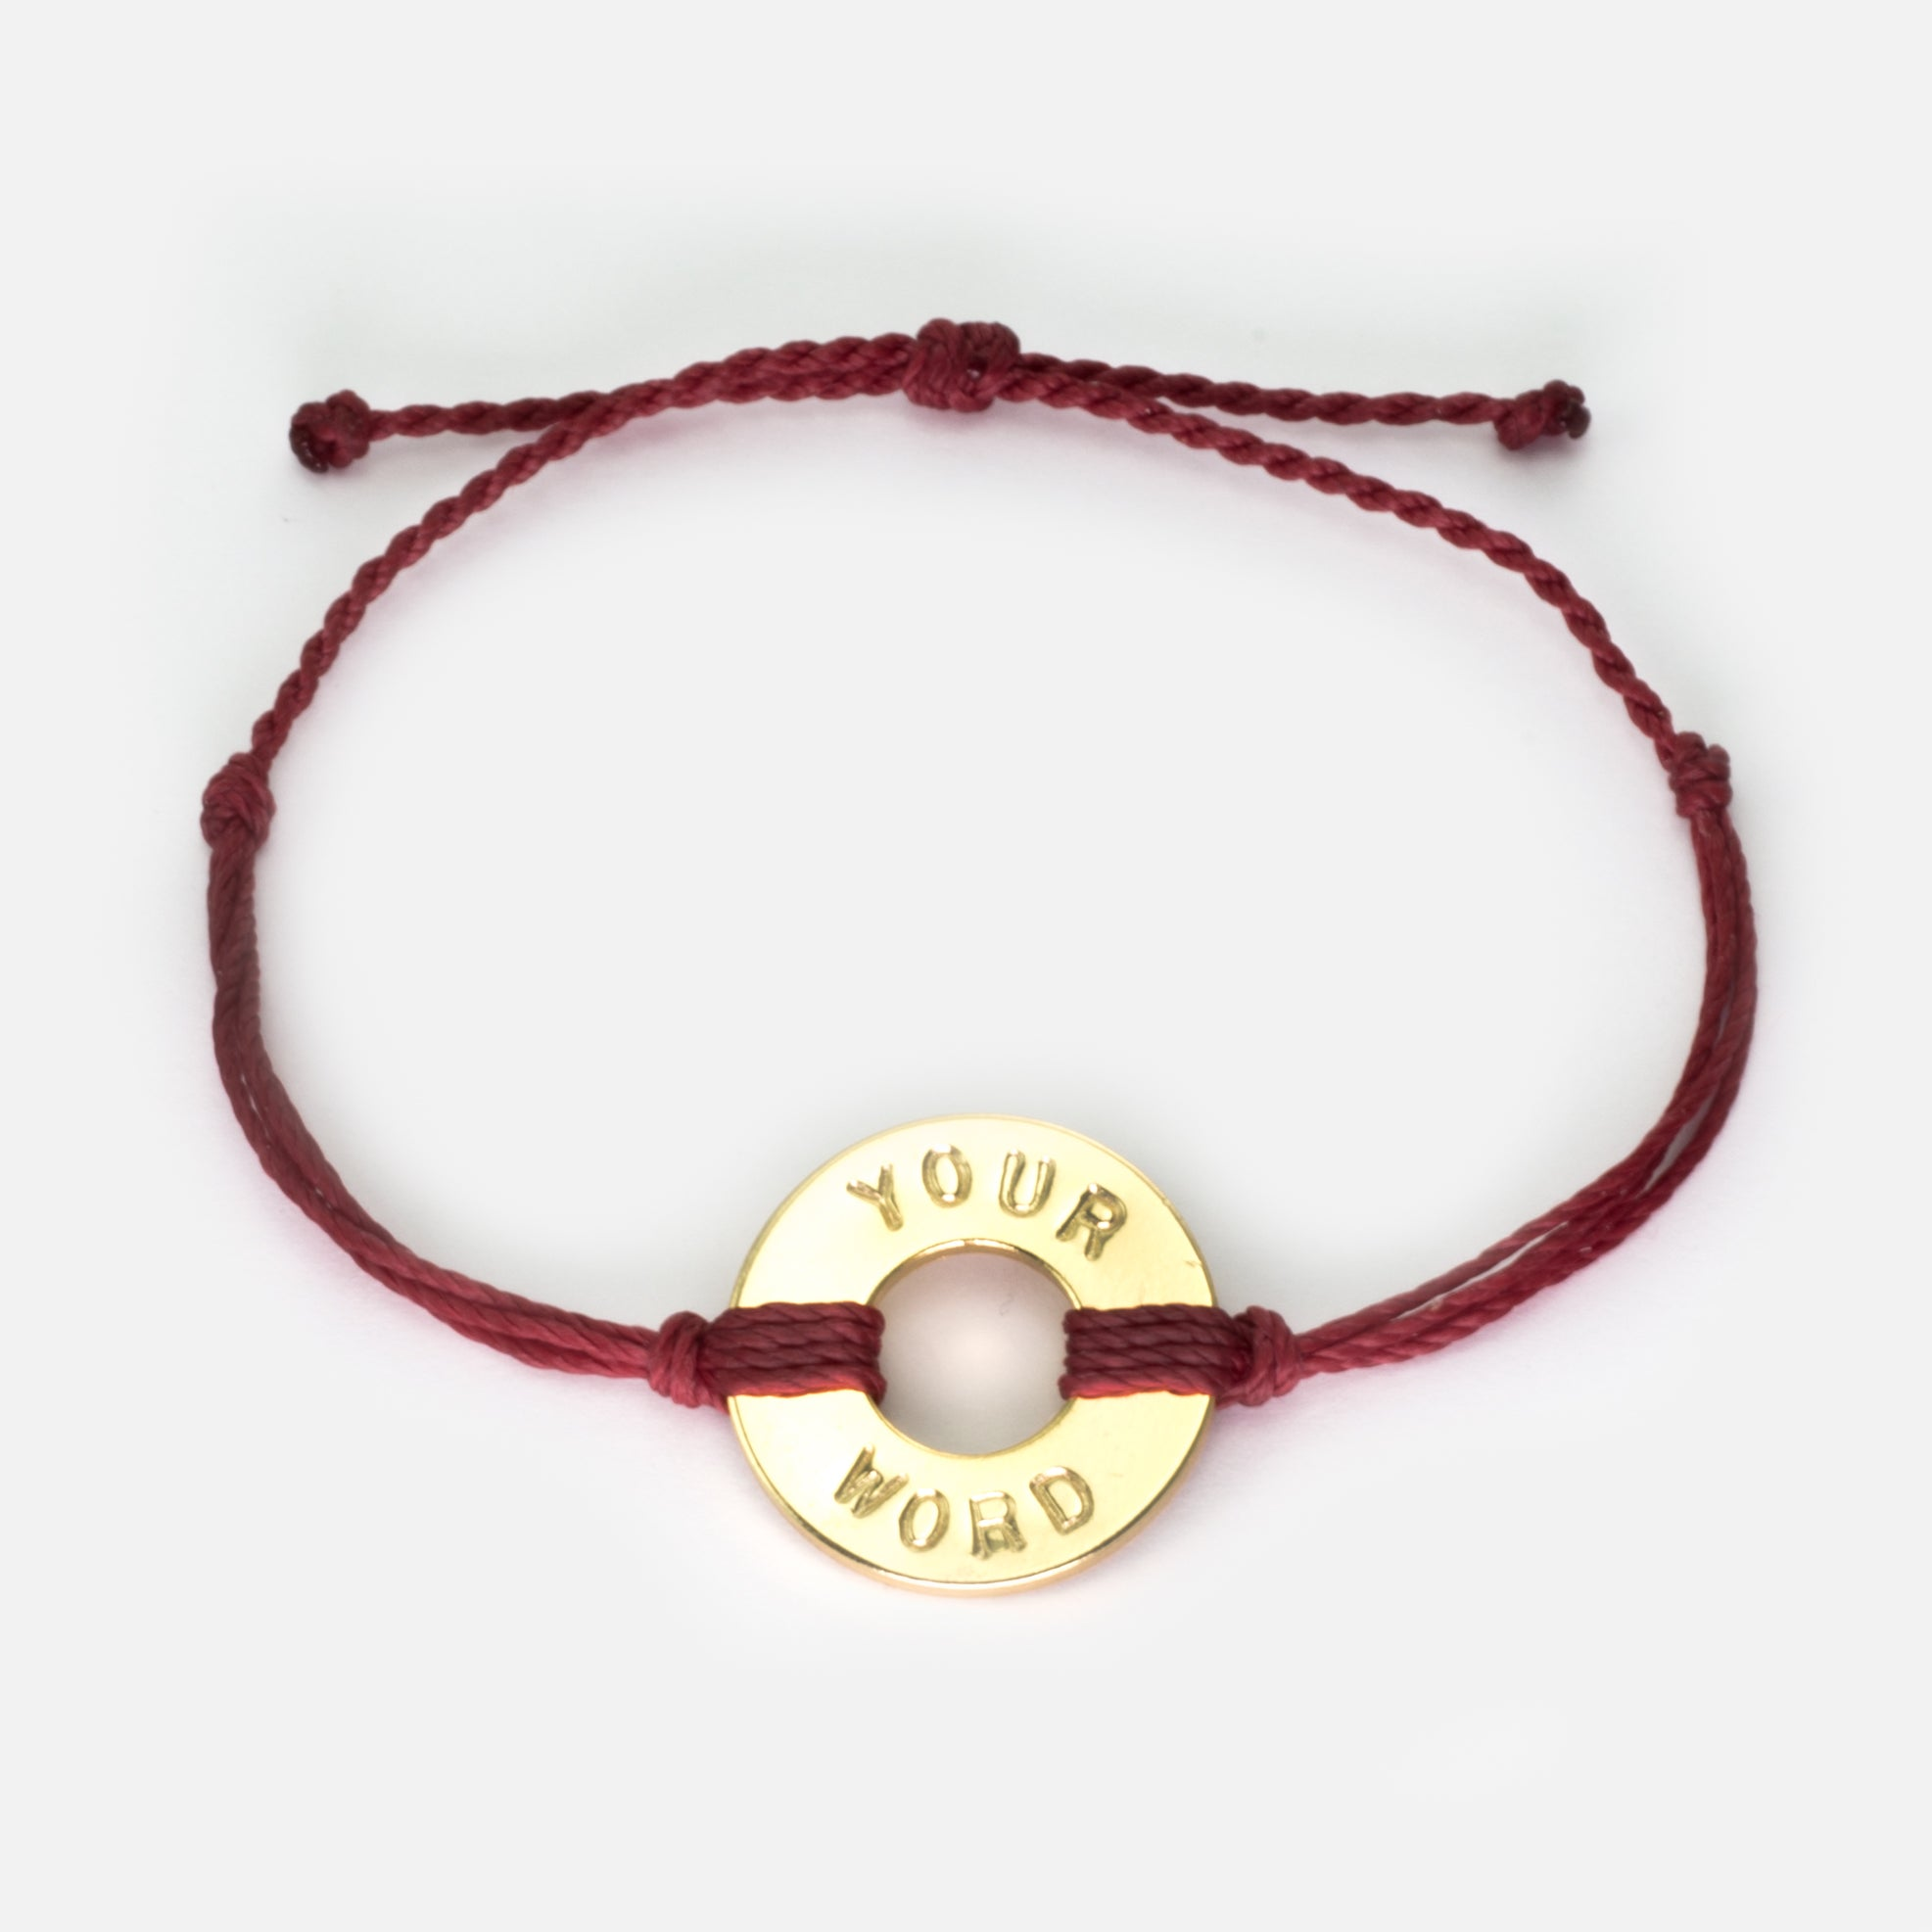 MyIntent Custom Twist Bracelet Burgundy String with Gold Token